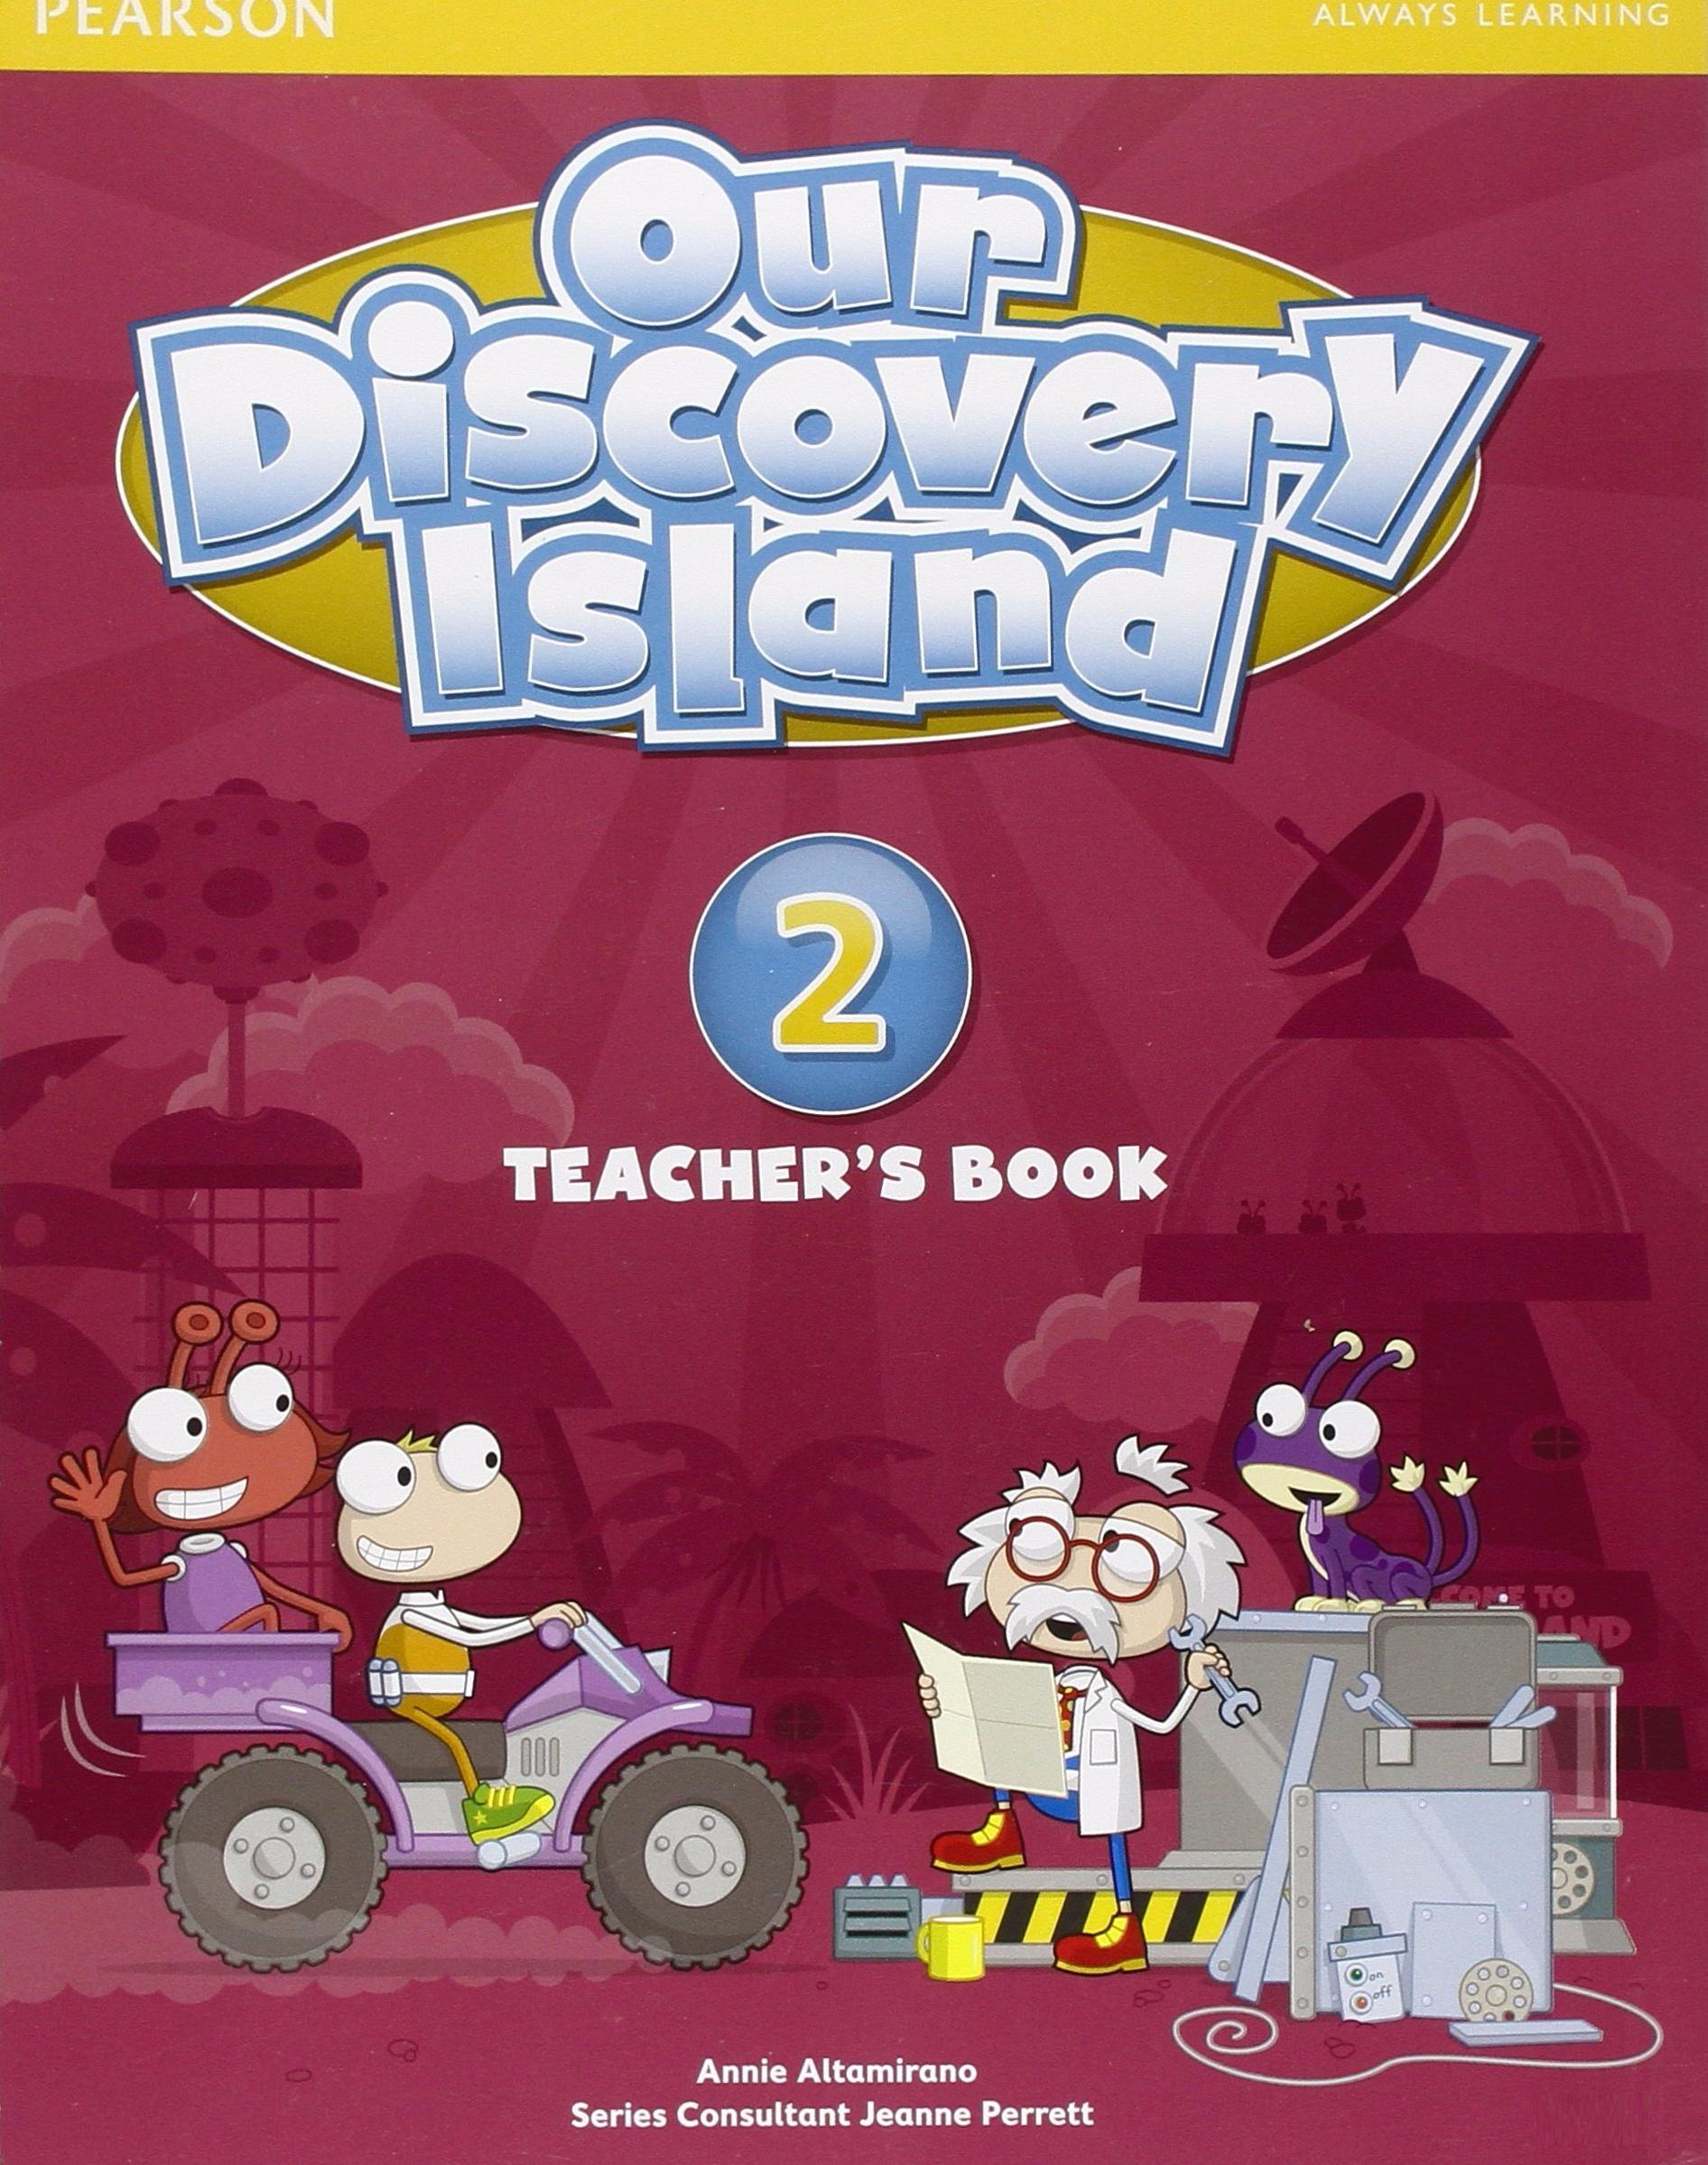 OUR DISCOVERY ISLAND 2 Teacher's Book + Pin Code